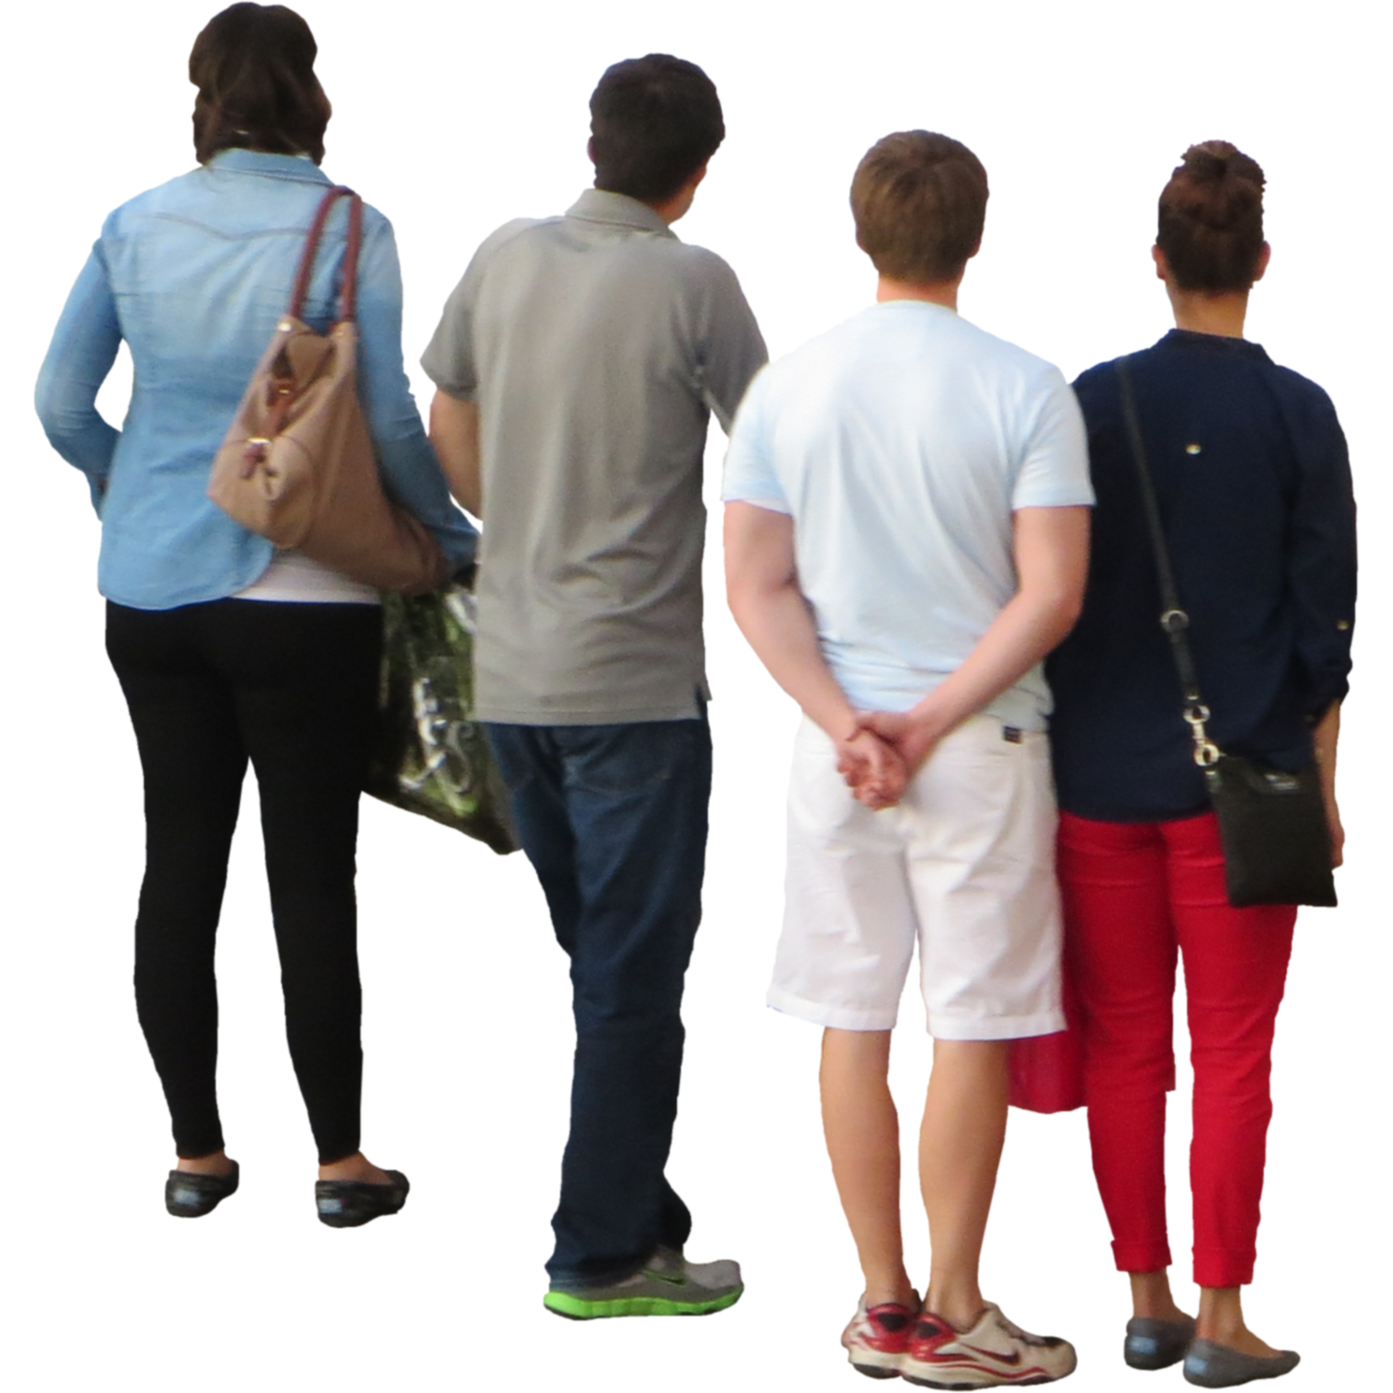 Group Of Four Looking Over Bridge Download Number 3221 Daily Updated Free Icons And Png Images For Your Projects A Drawing People People Png People Cutout